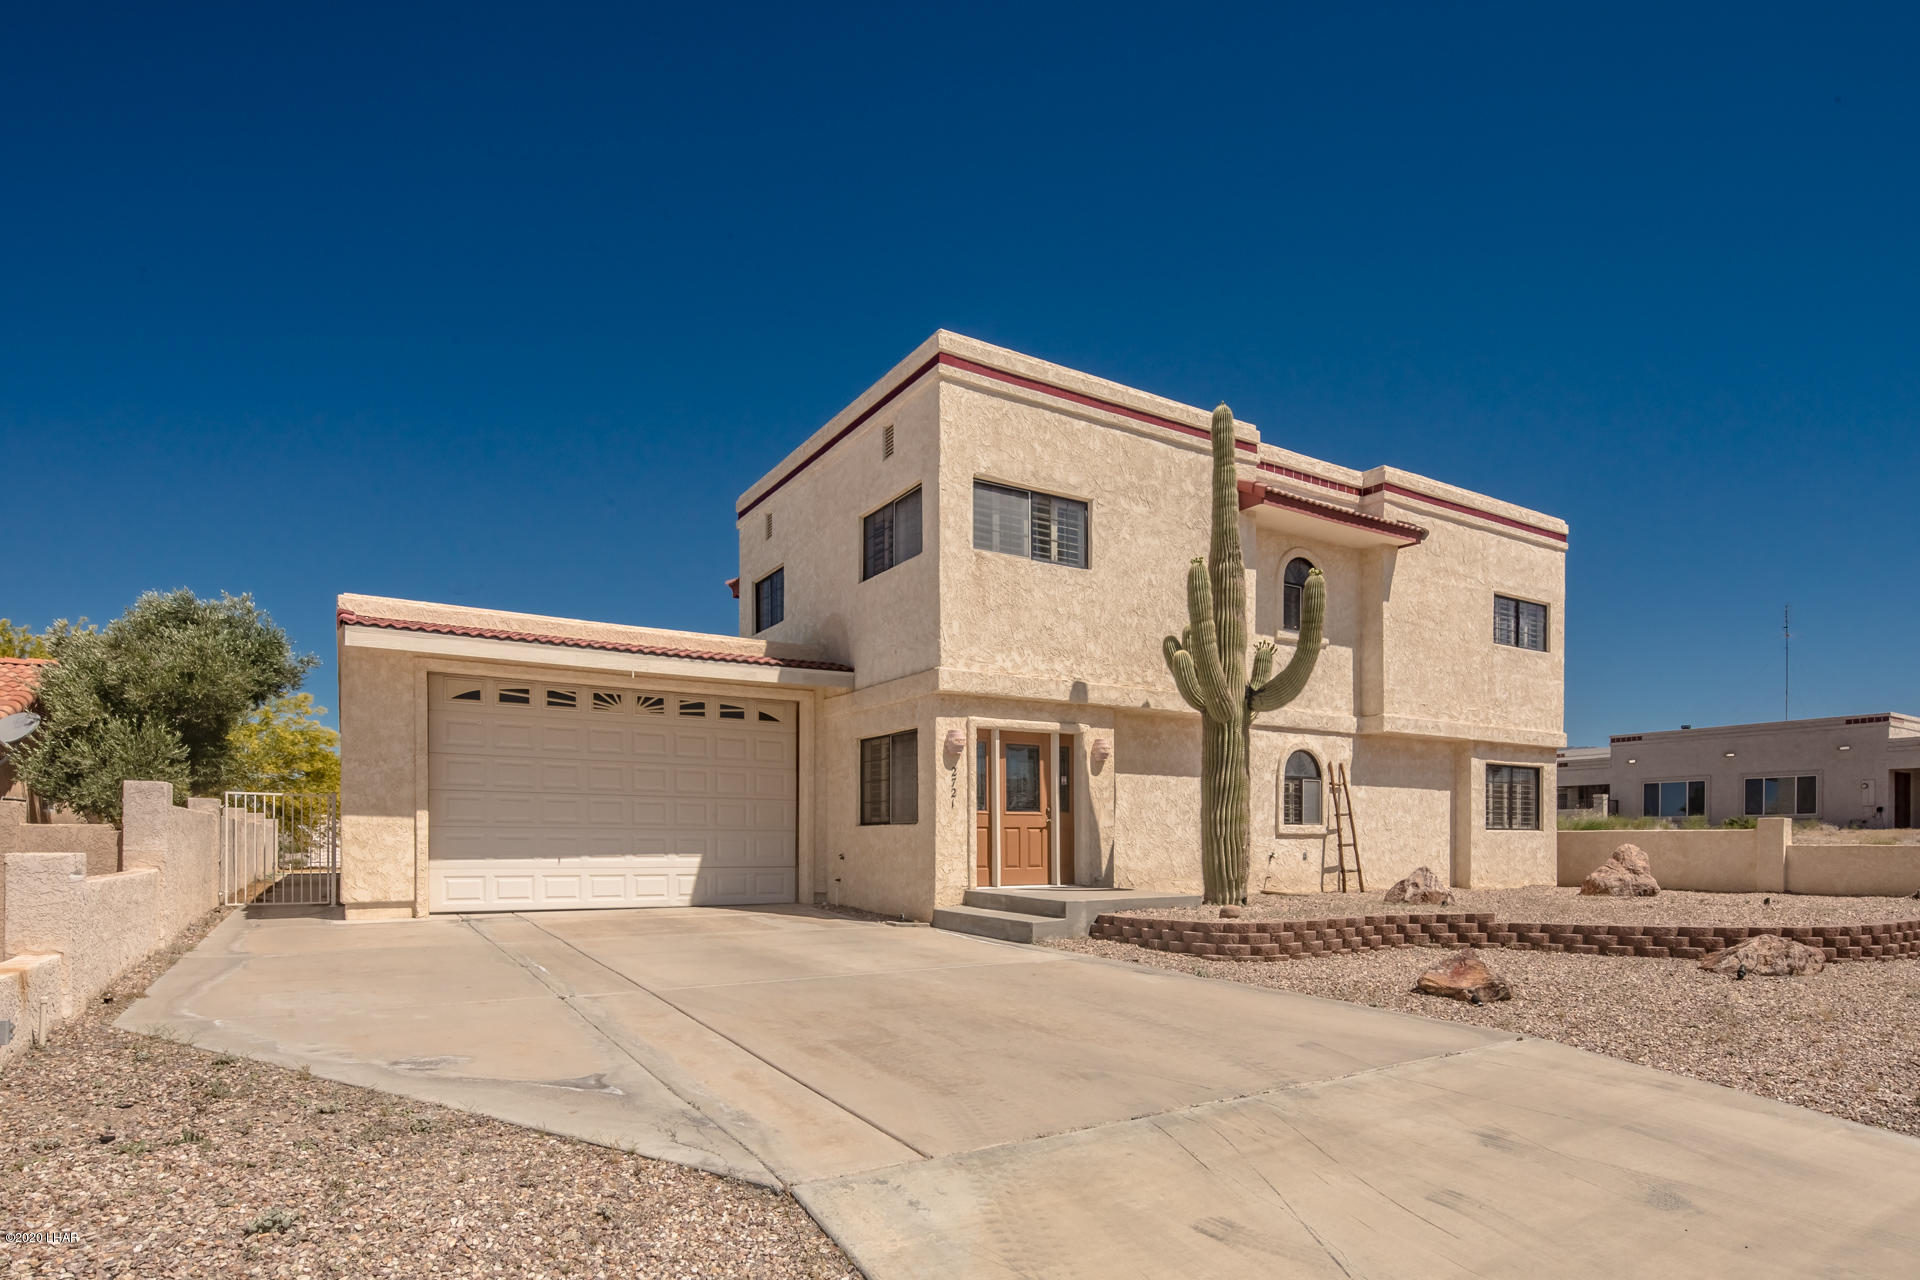 Details for 2721 Paseo Dorado, Lake Havasu City, AZ 86406